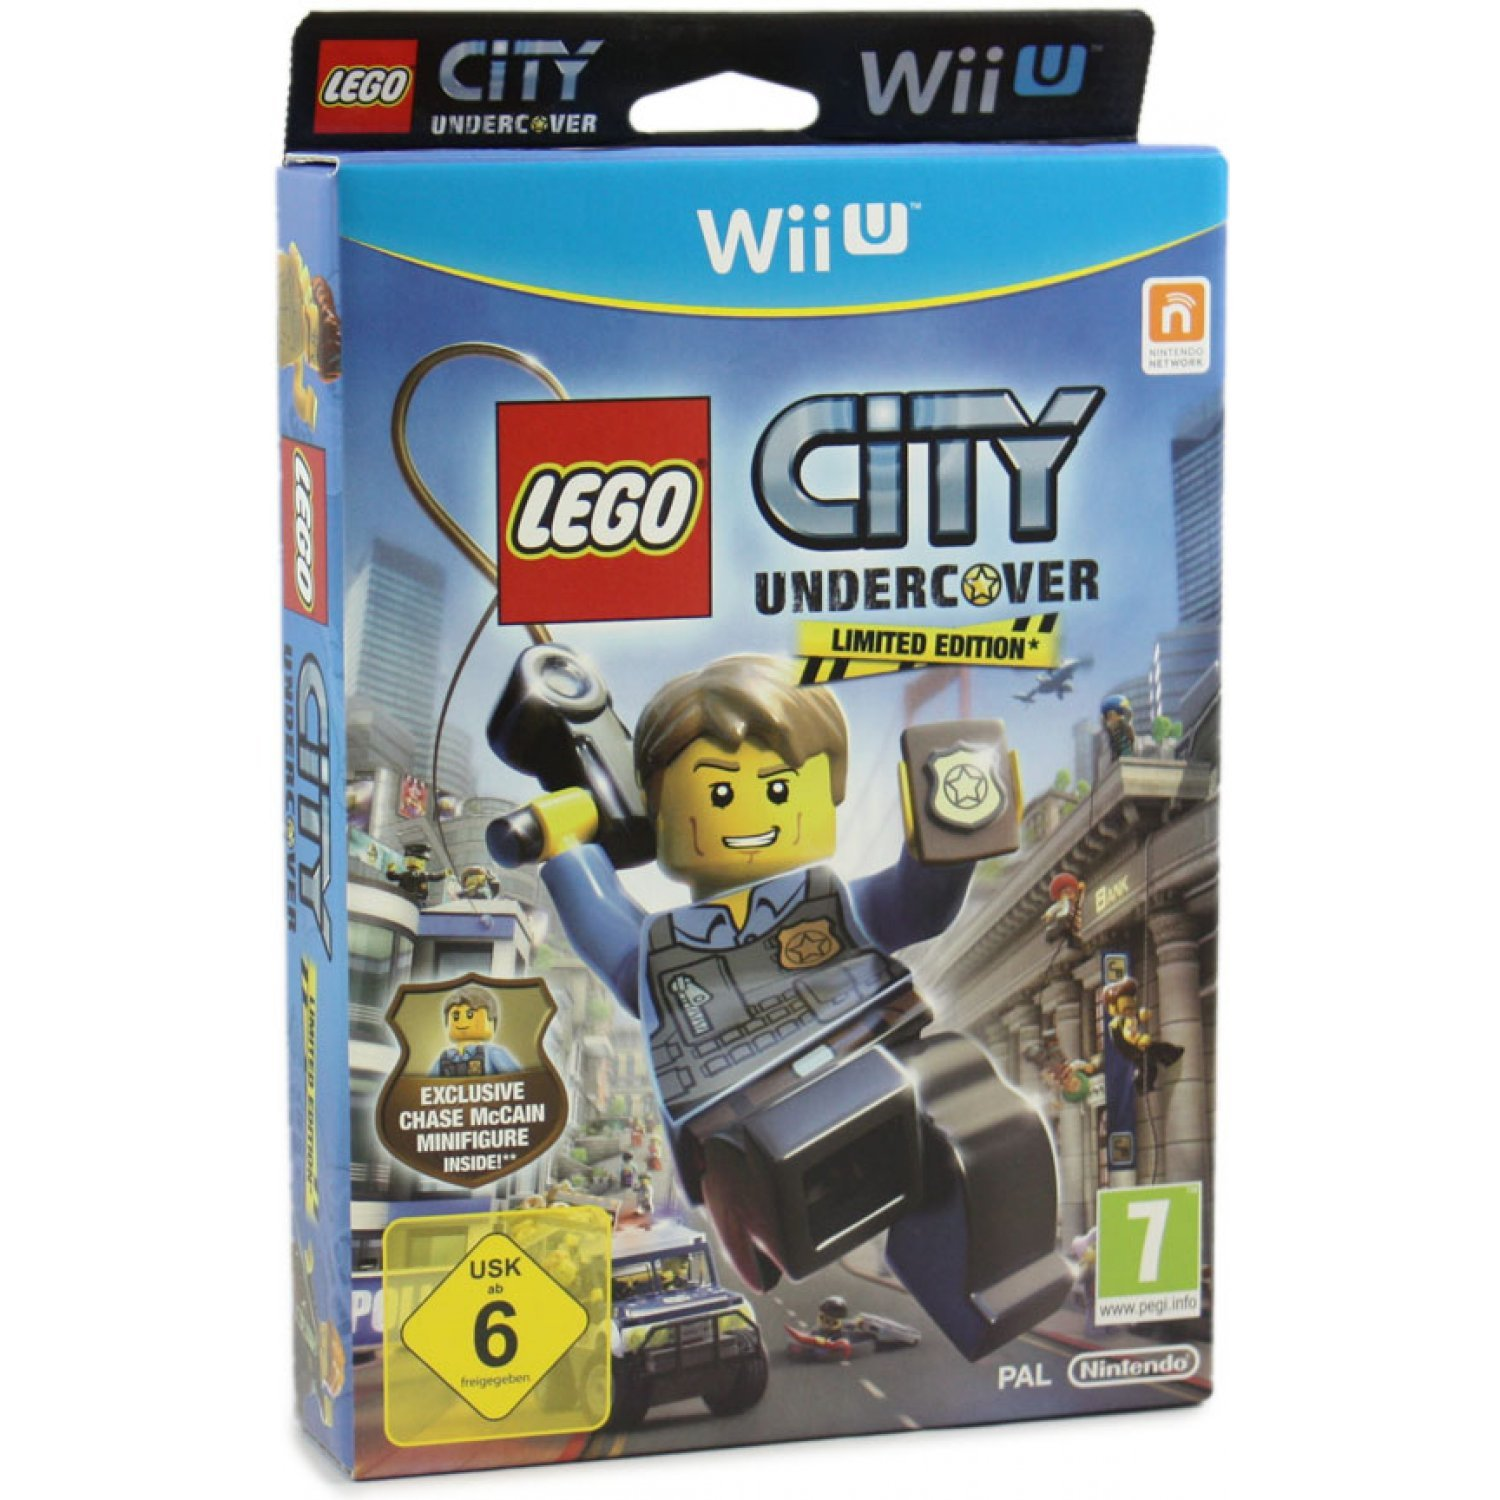 LEGO City Undercover (Limited Edition)